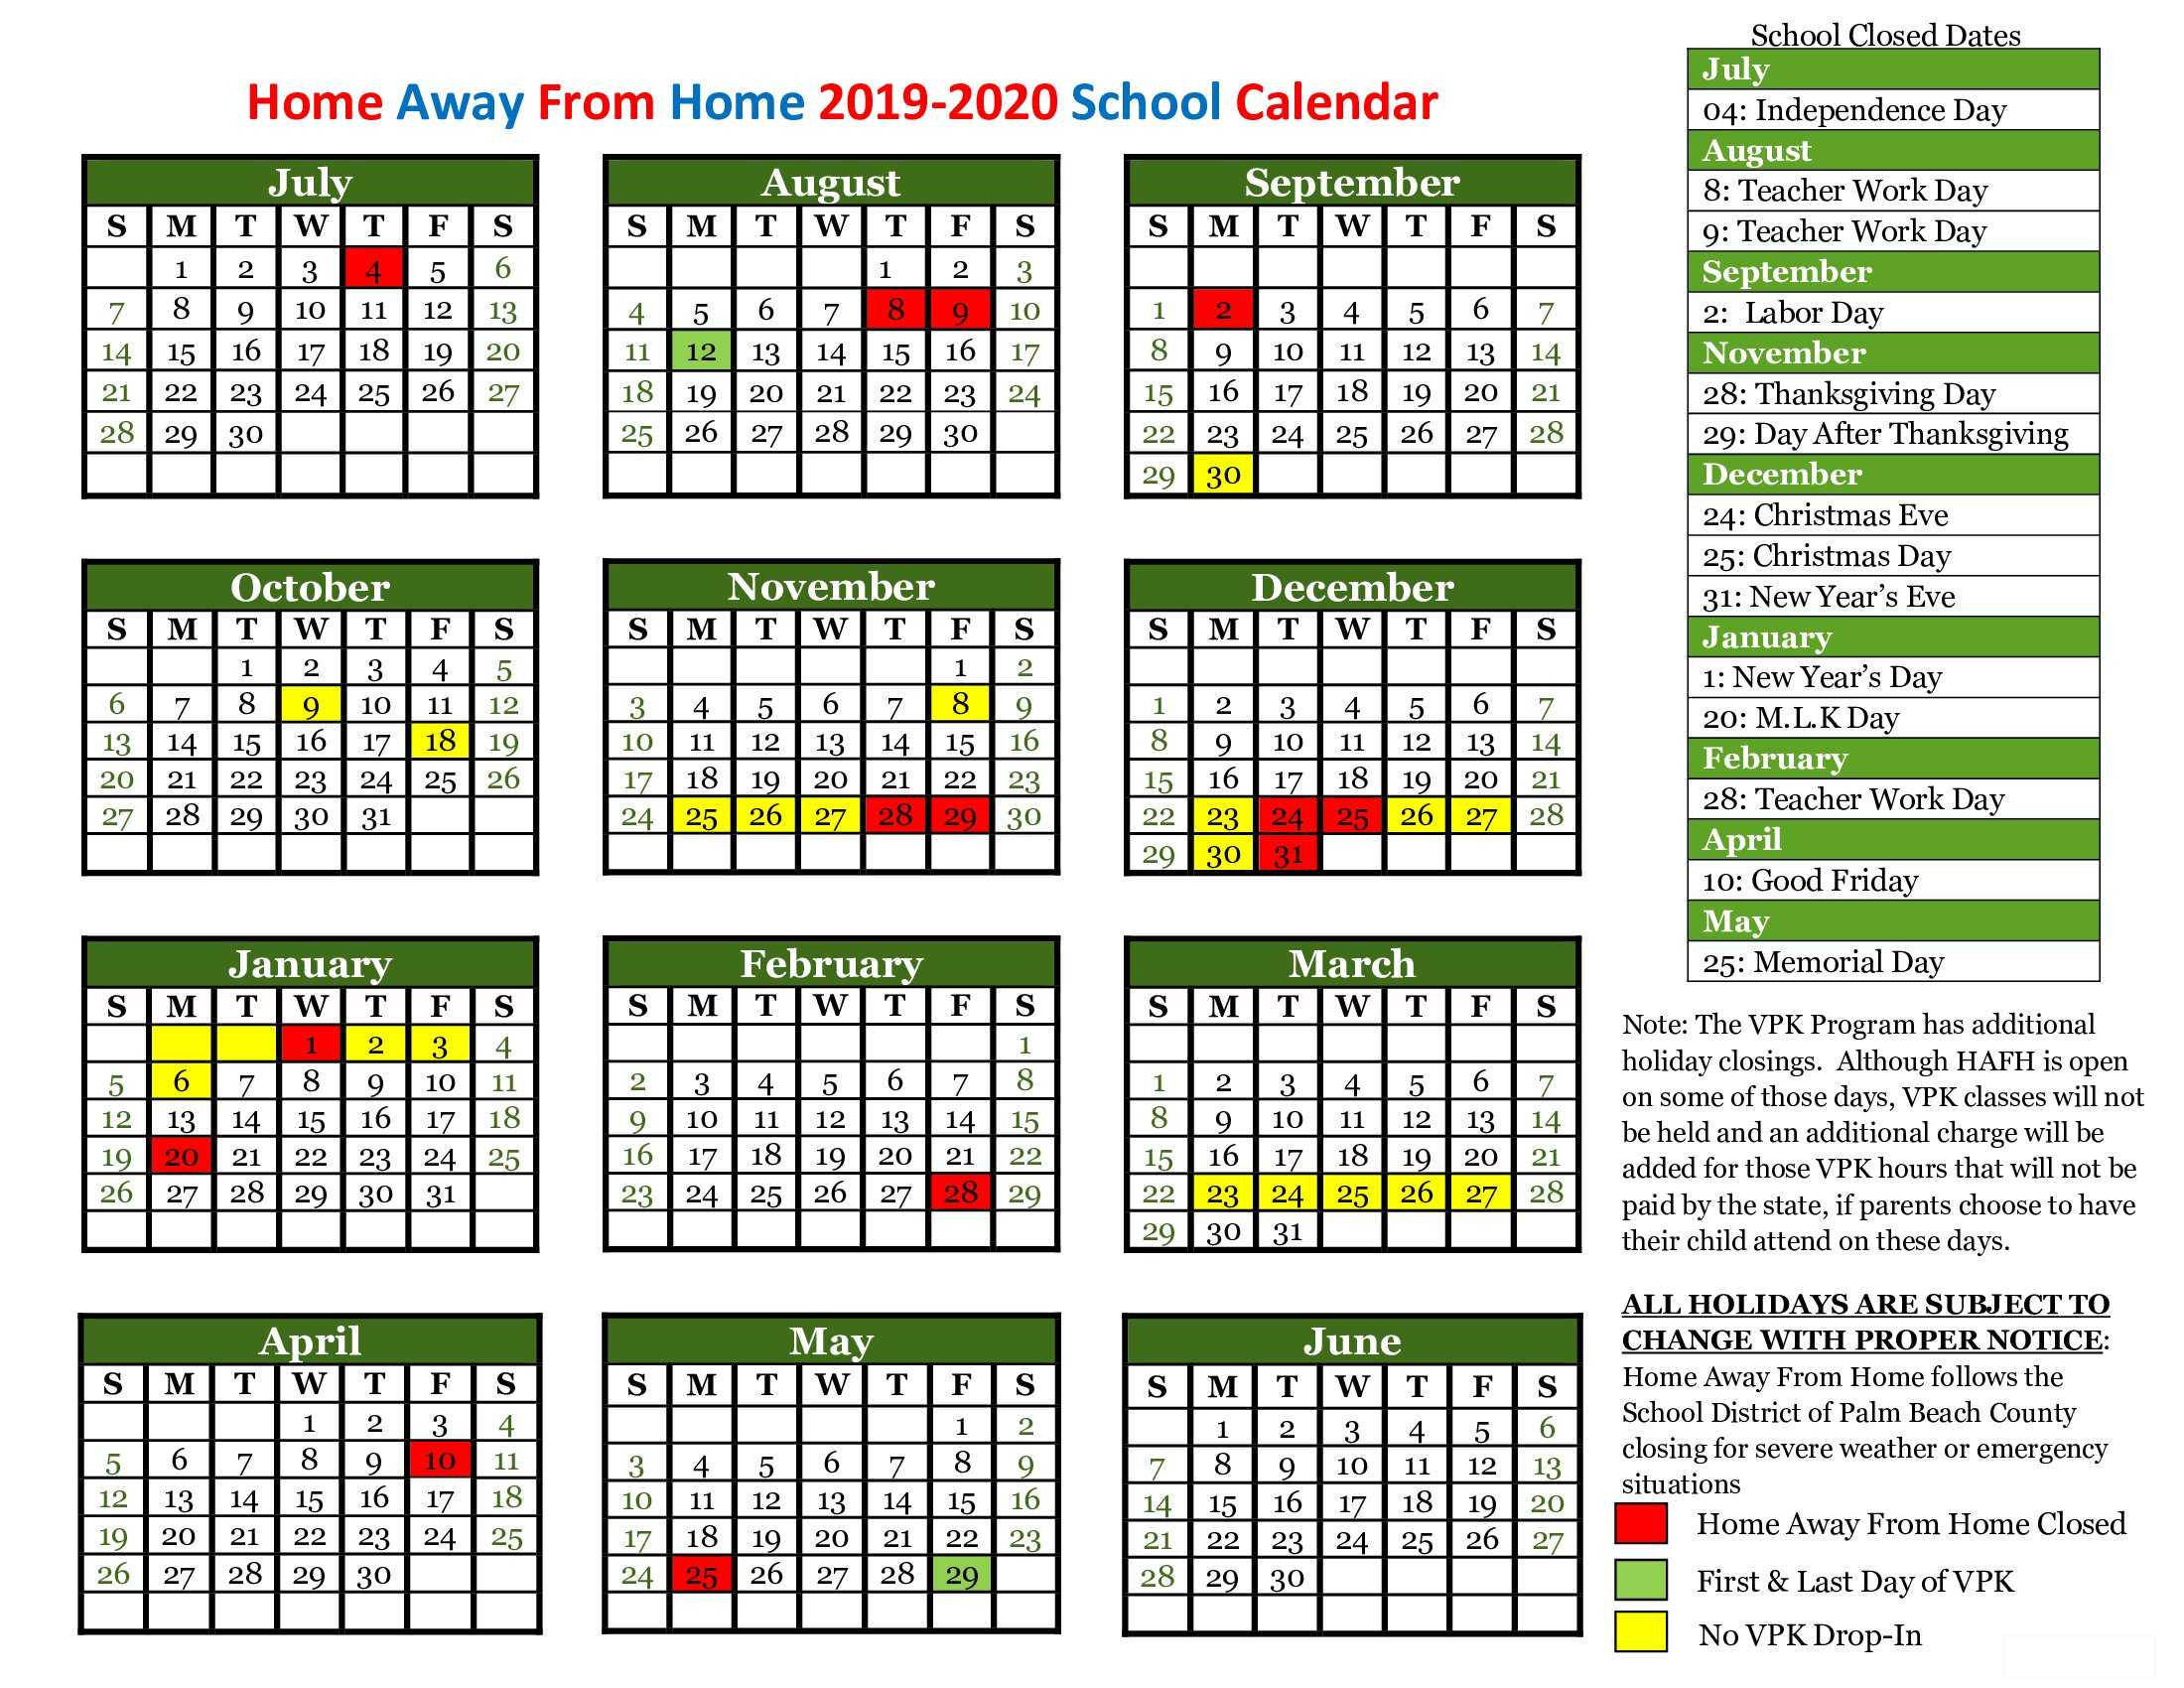 Child Care Holiday Schedule - View School Closings | Home pertaining to Palm Beach State College School Calendar